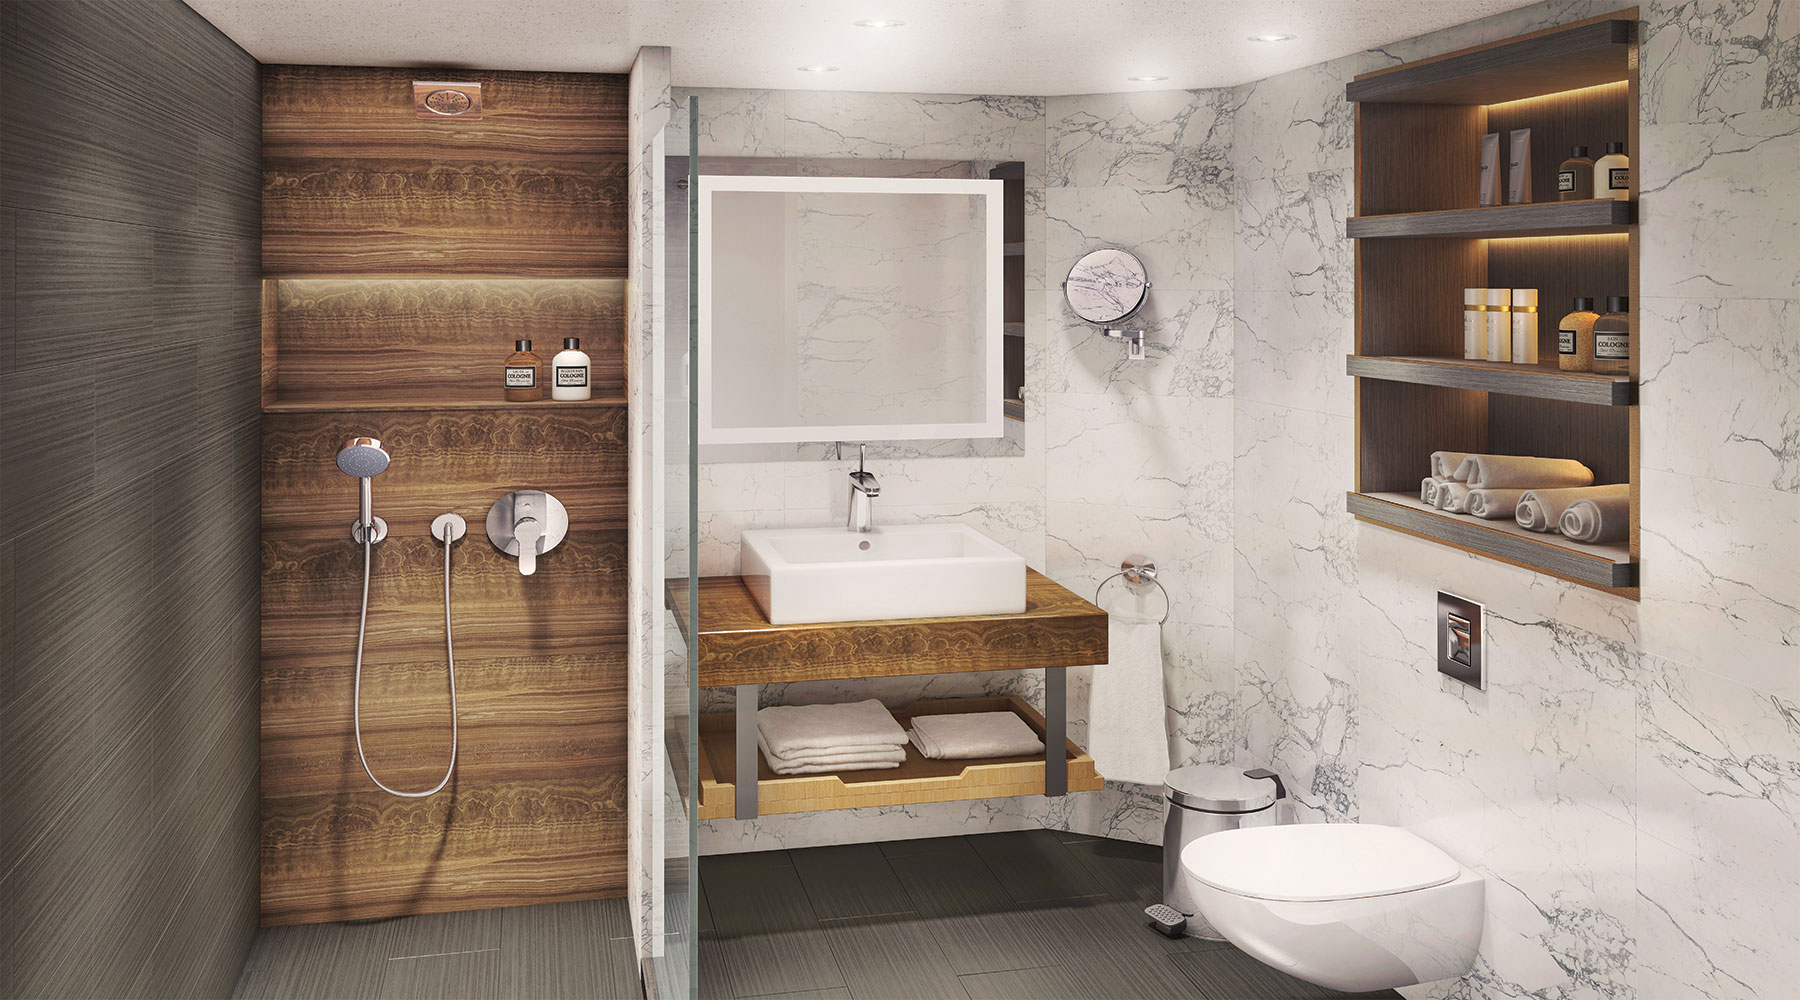 Spa Bathroom Suites Azamara Reimagined Cruisetotravel